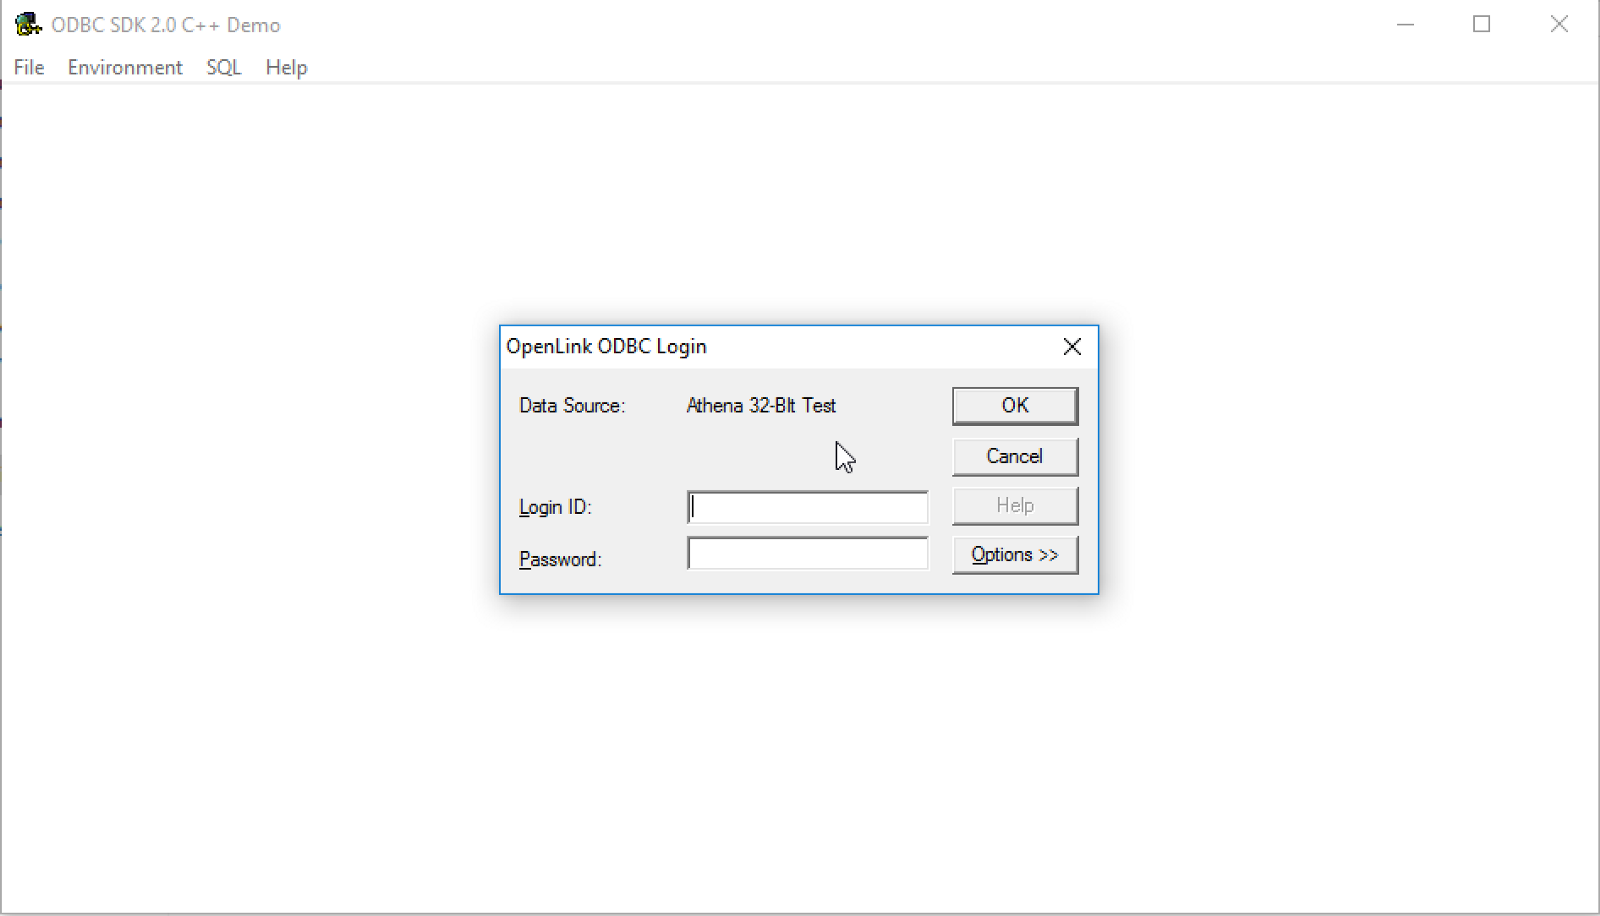 Jdbc Odbc Driver For Windows 7 32 Bit Free Download